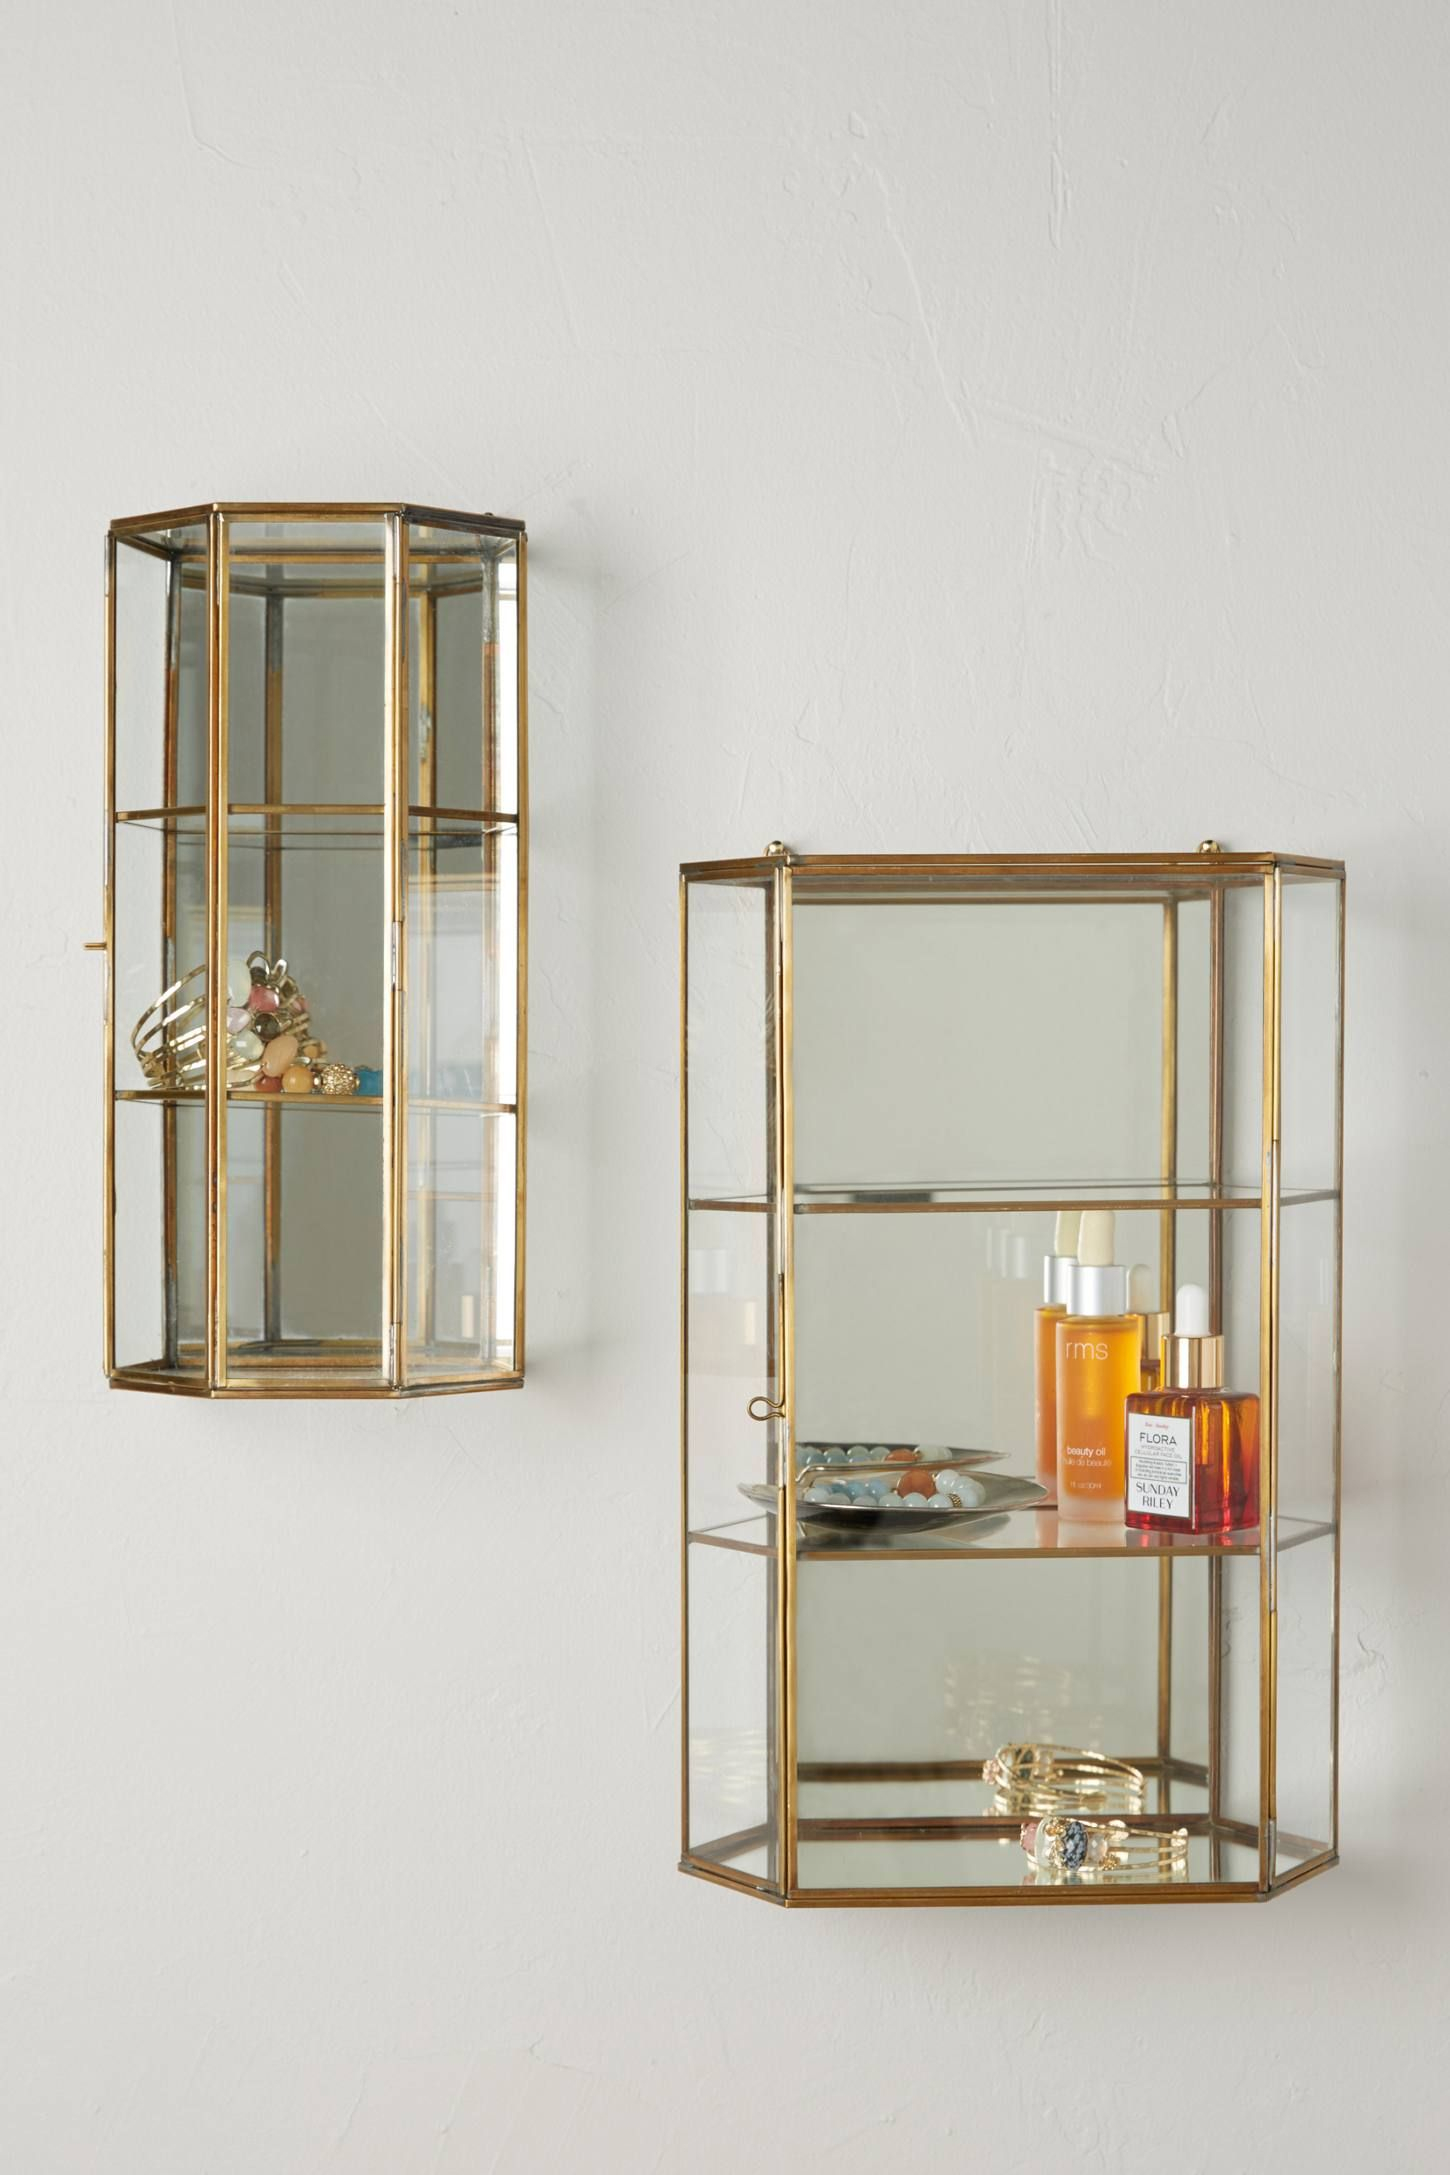 Superieur Wall Curio Cabinet Wall Curio Cabinet Walls And Display Cabinets With  Regard To Size 1450 X